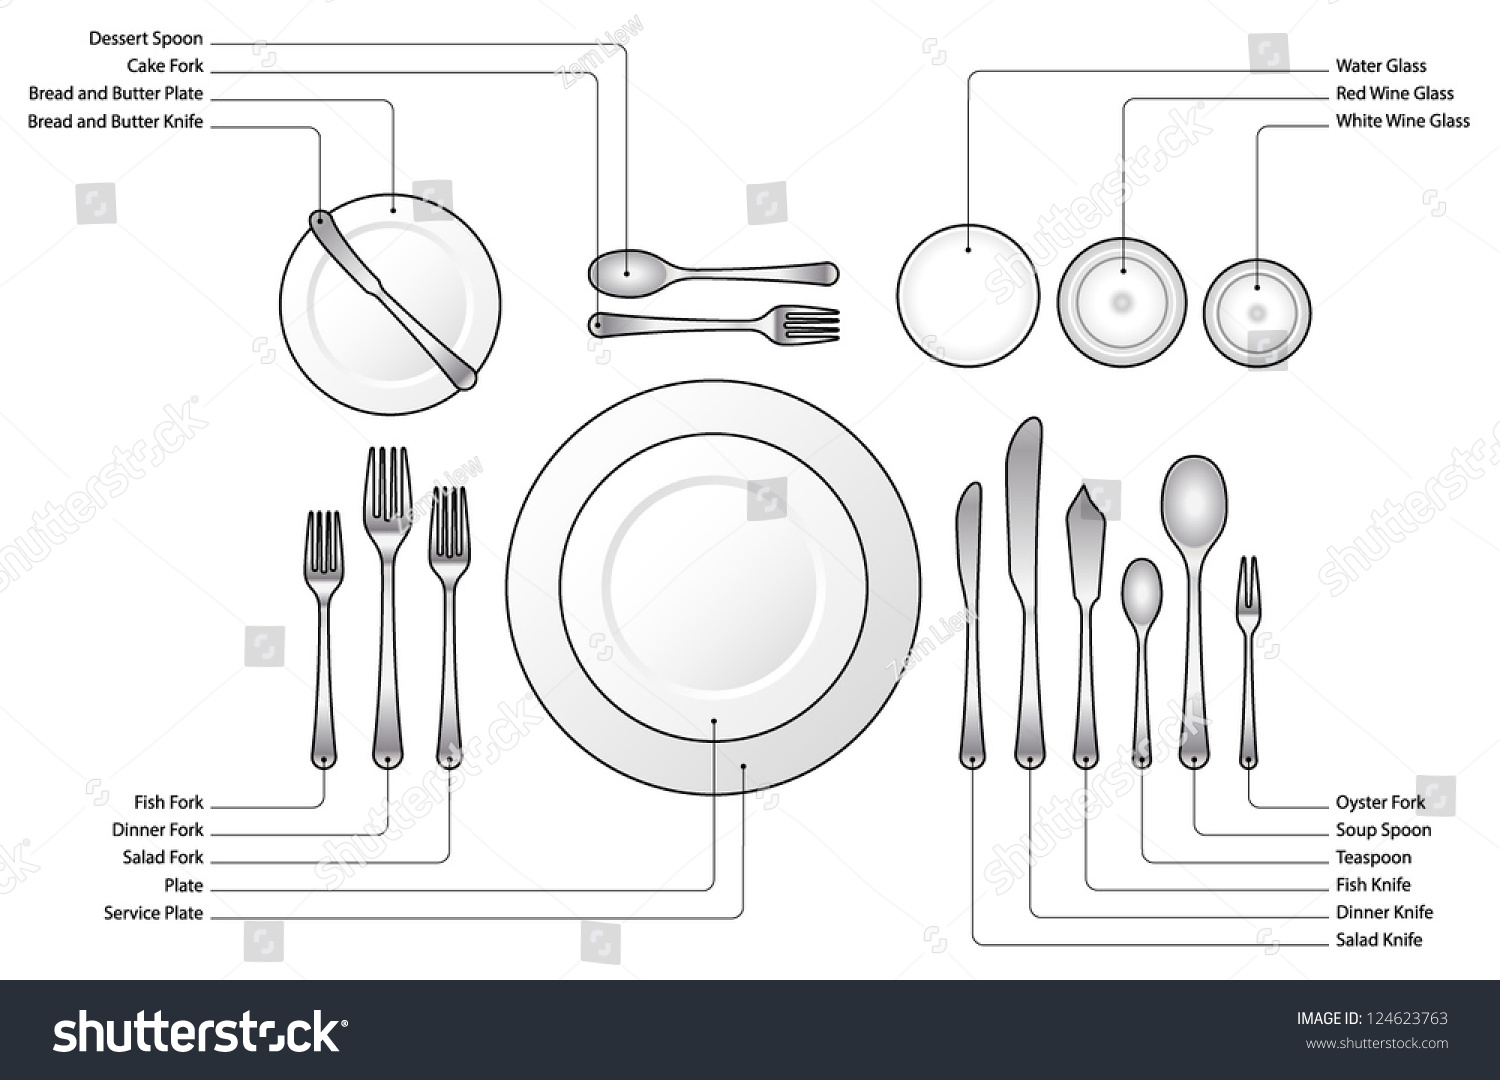 Diagram Place Setting Formal Dinner Oyster Stock Vector 124623763 ...